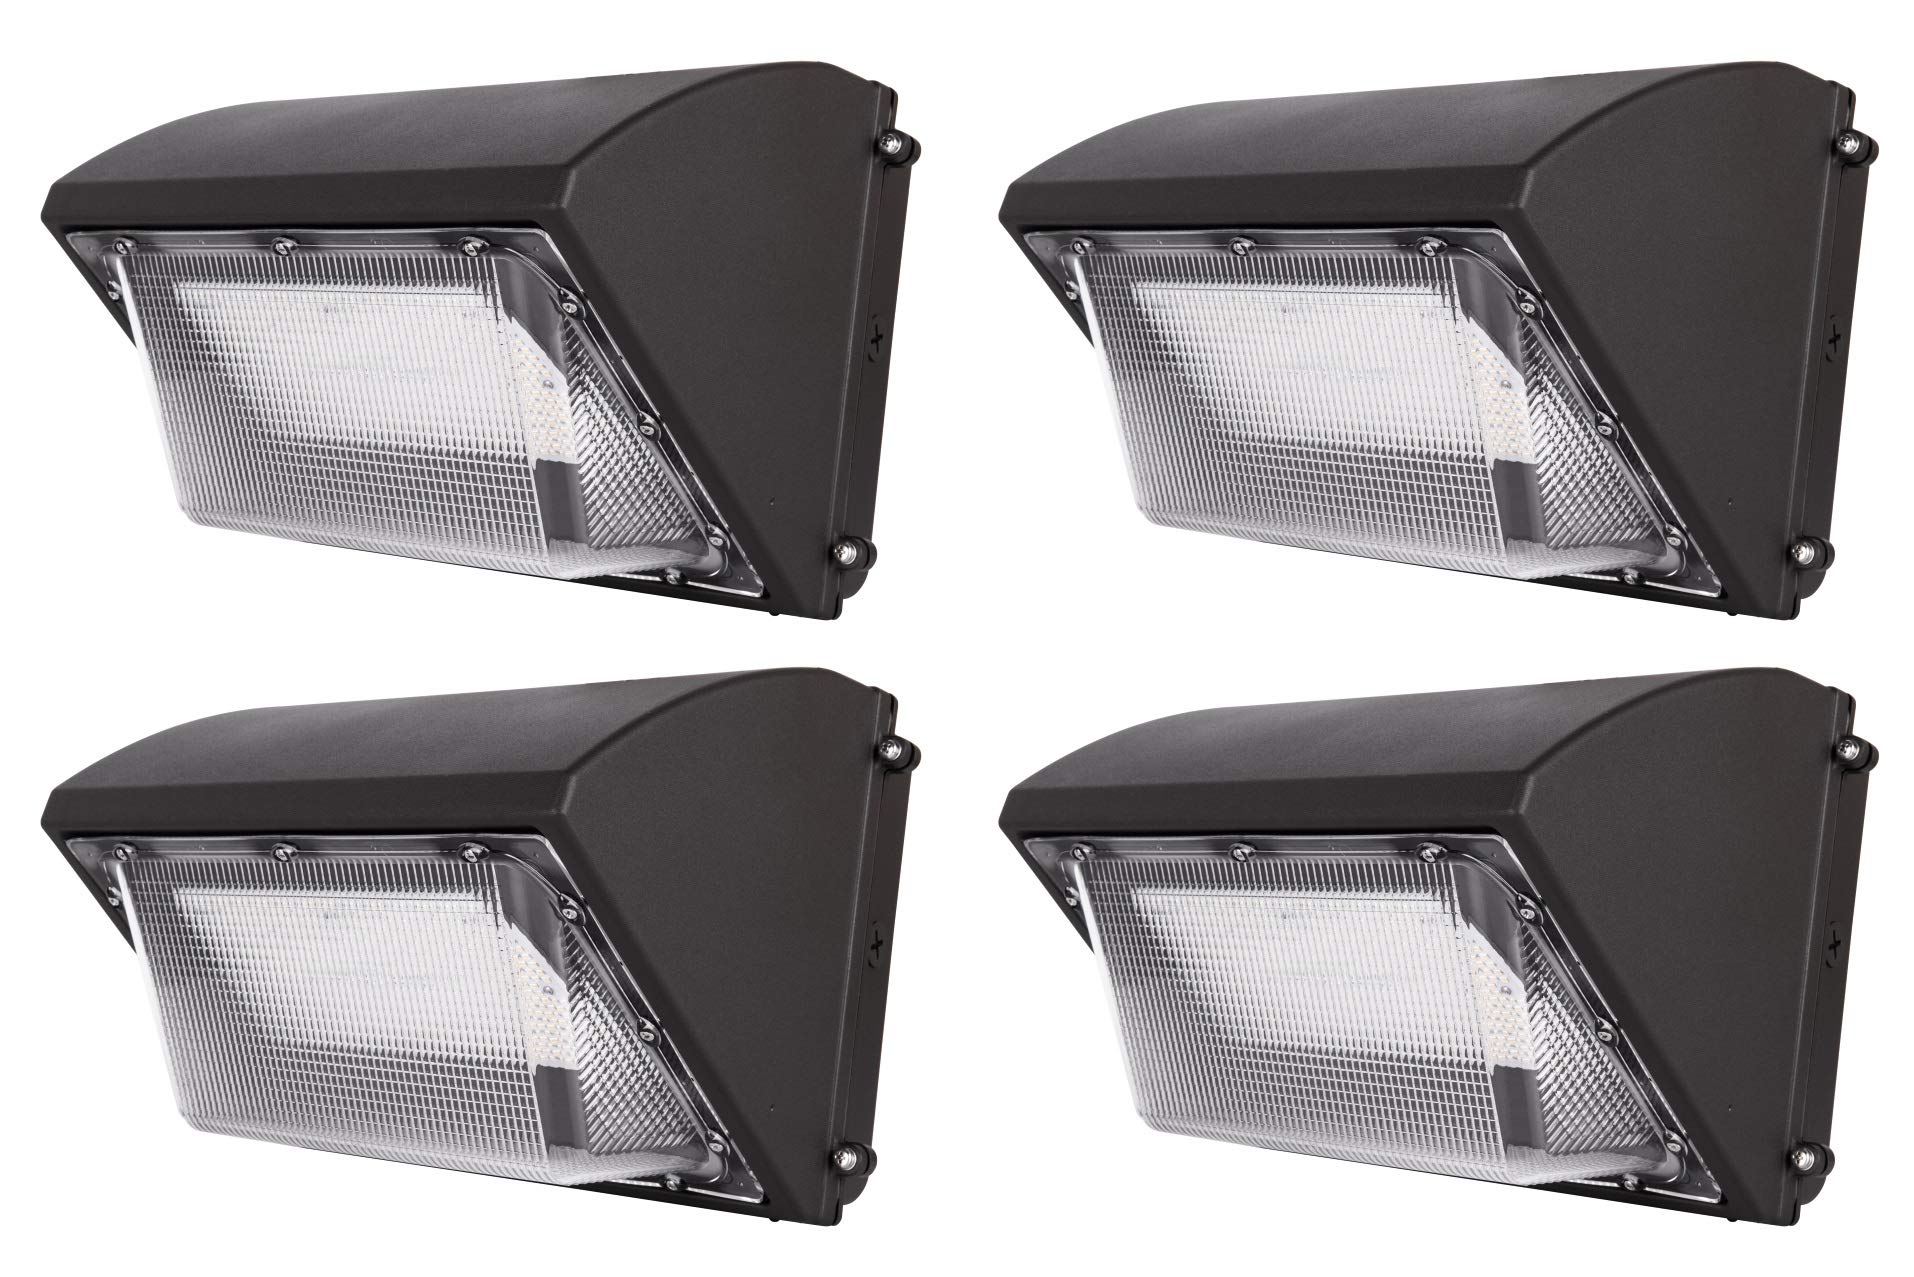 Hyperikon 135W LED Wall Pack Fixture, HPS/HID Replacement, 5000K, 17500Lumens, Commercial and Industrial Outdoor Lighting, IP65 Waterproof - UL & DLC, 4-Pack